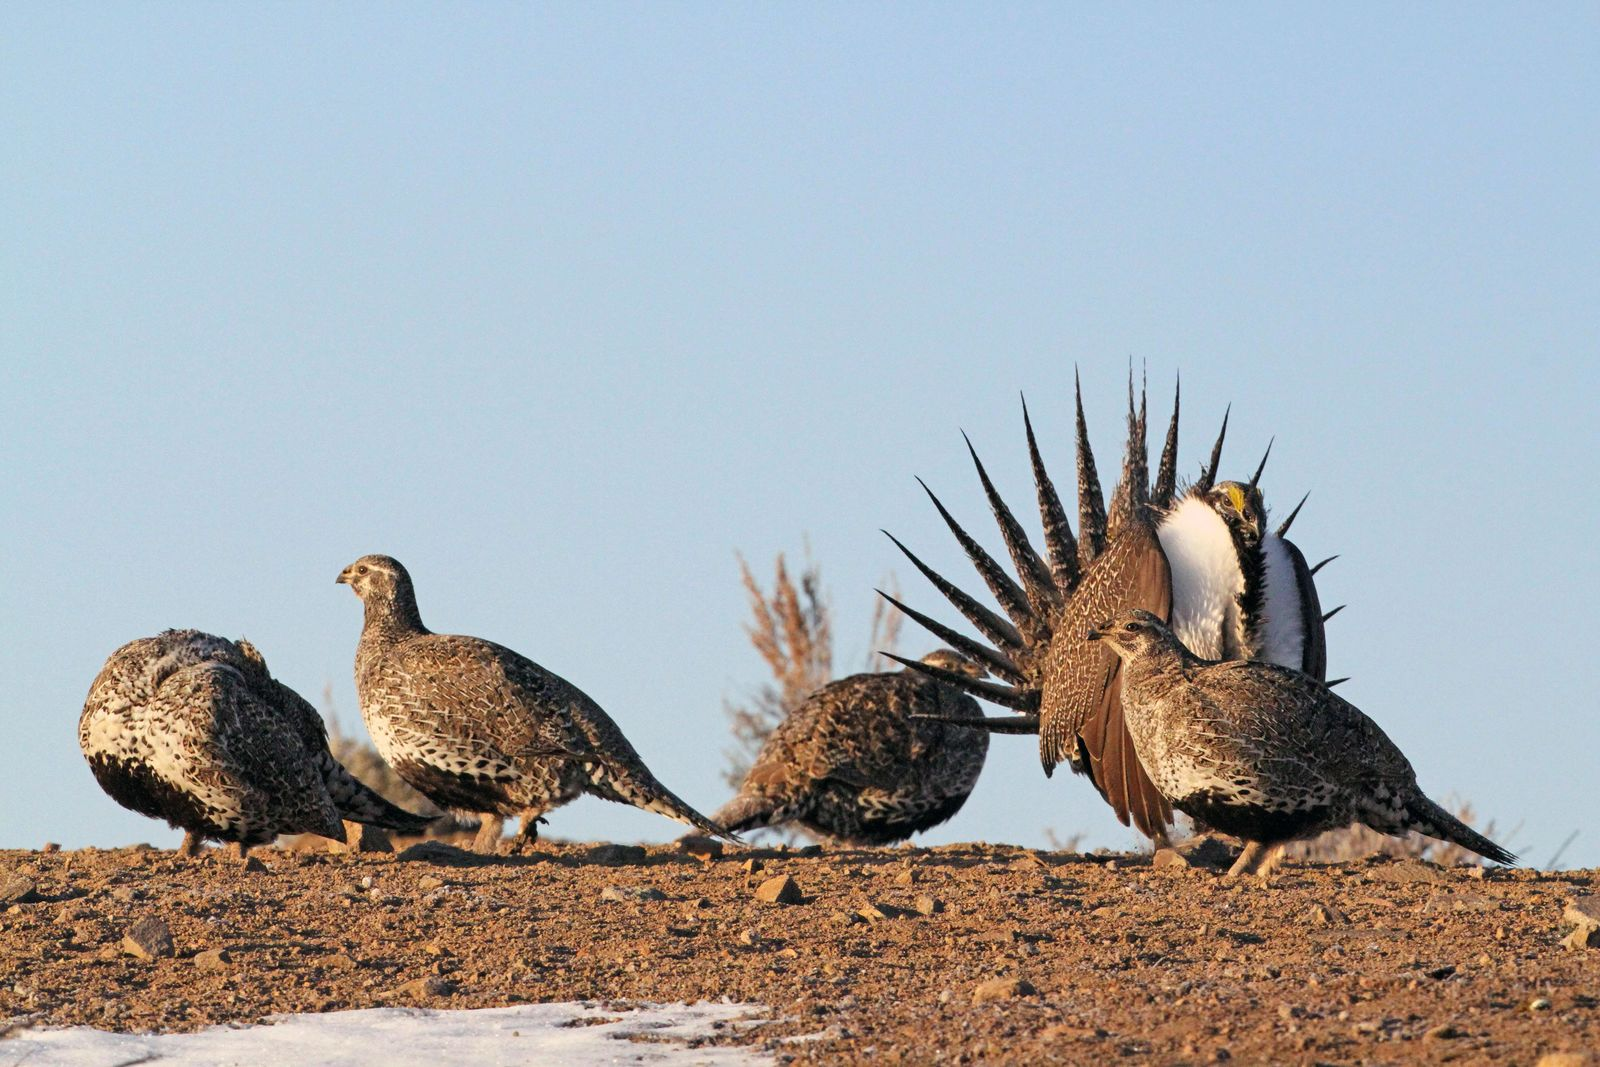 The applications for four Utah bird hunts opened today, greater sage grouse, sandhill crane, swan and sharp-tailed grouse. Permit applications are open from July 3-18. Photos courtesy of the Utah Division of Wildlife Resources